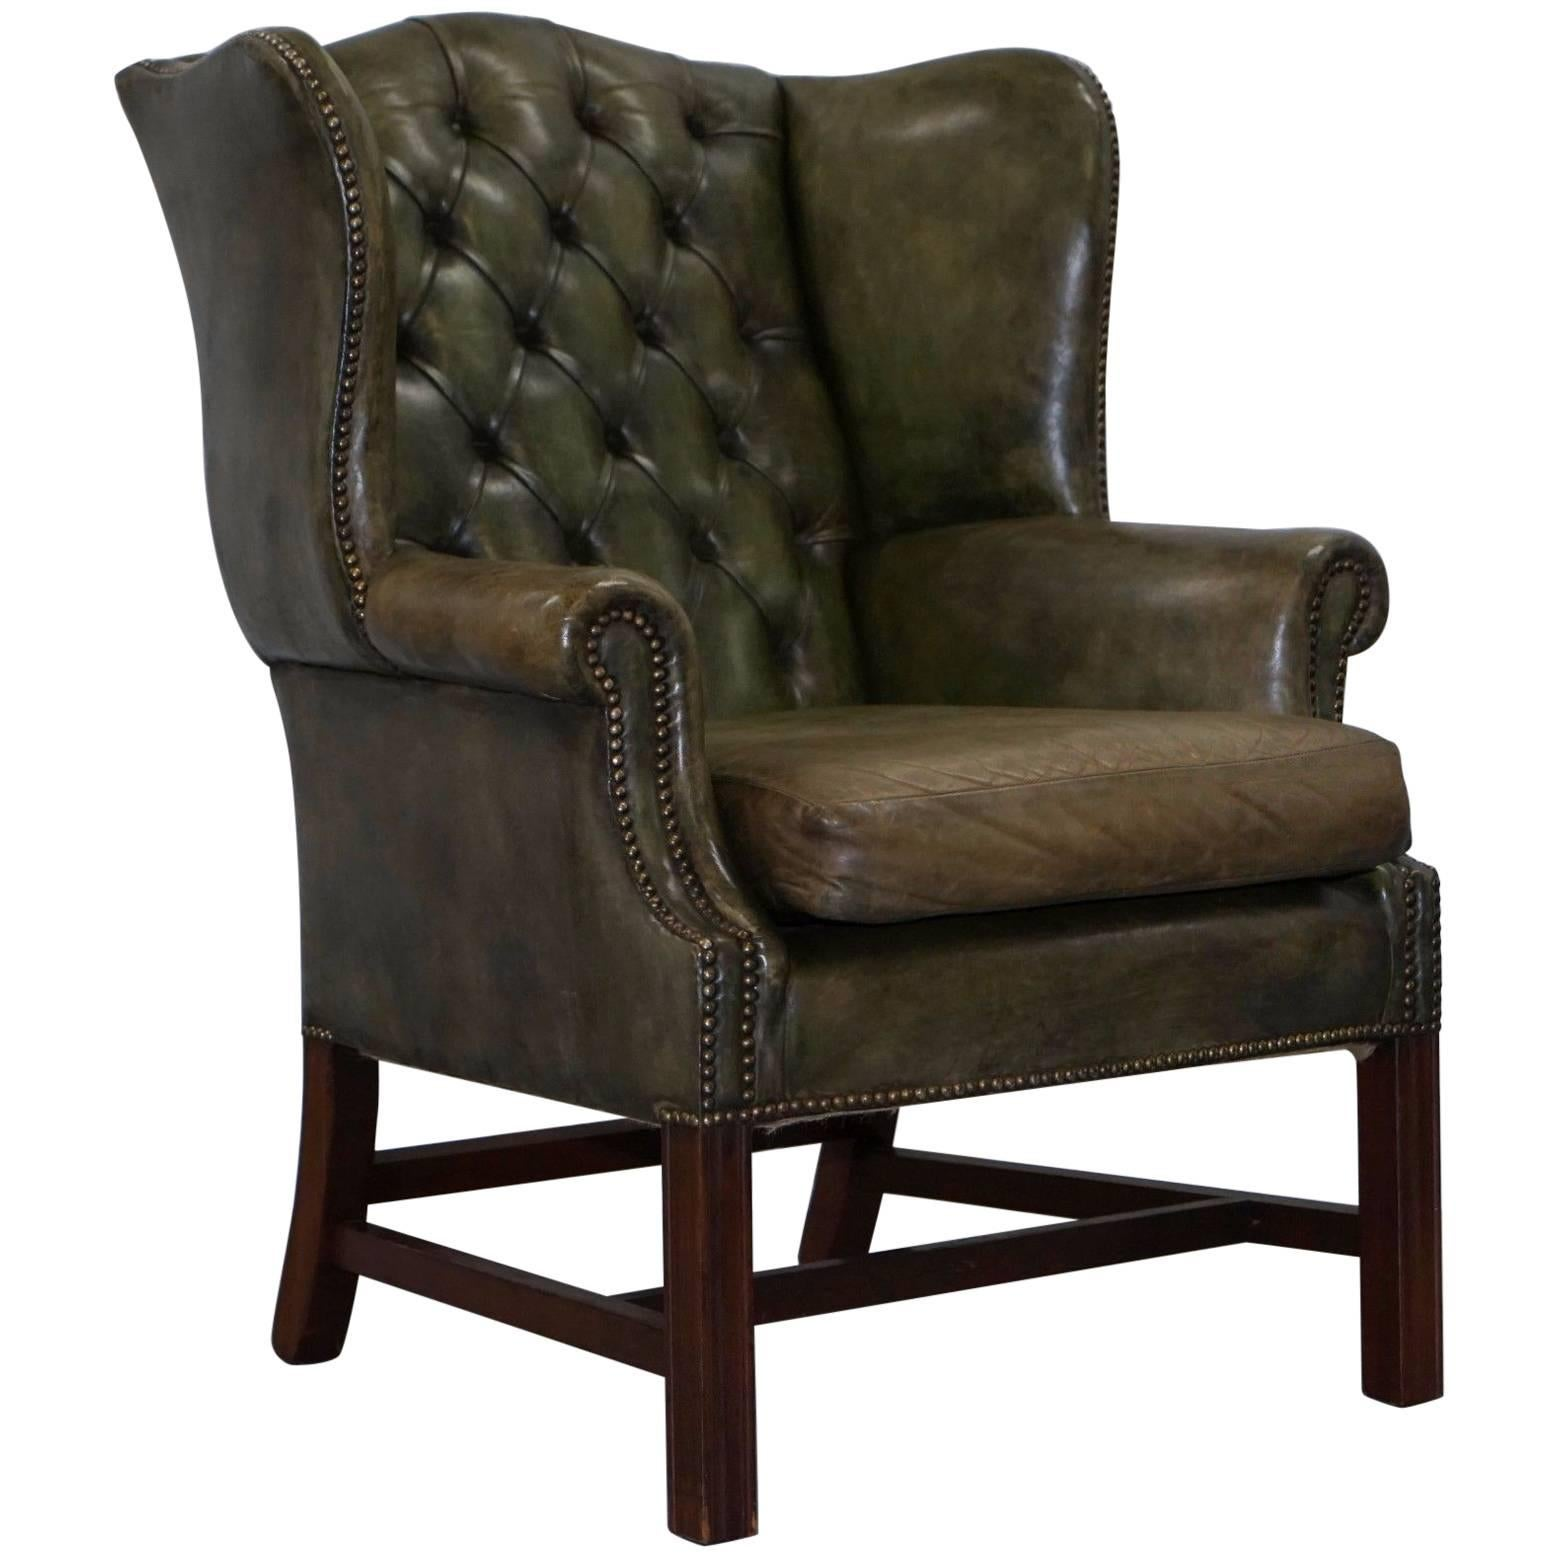 Merveilleux Original Hand Dyed 1960s Green Leather Chesterfield Georgian Wingback  Armchair For Sale